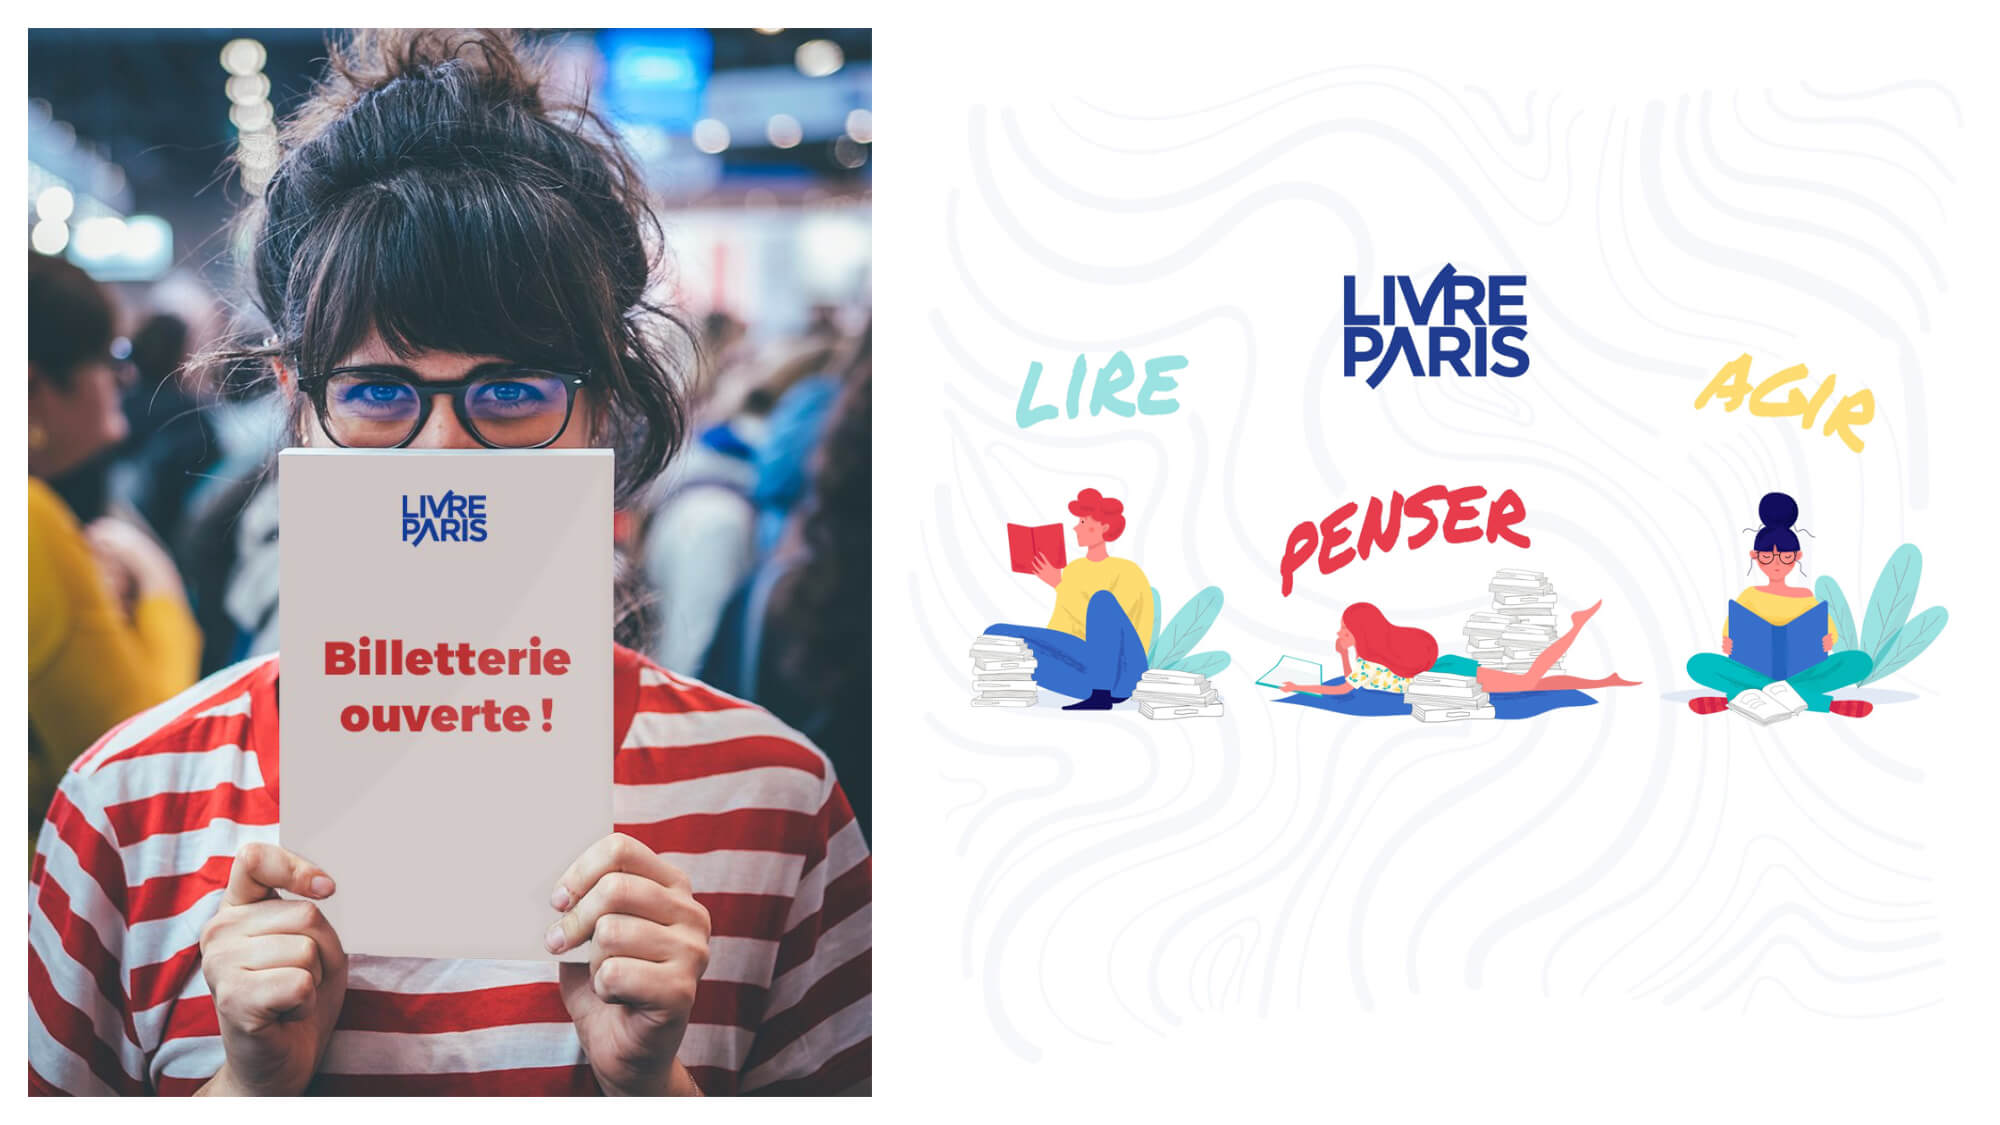 """Left, a girl holding up a book that reads """"tickets now on sale"""" for the Paris book fair in March. Right, a poster advertising the Paris book fair."""